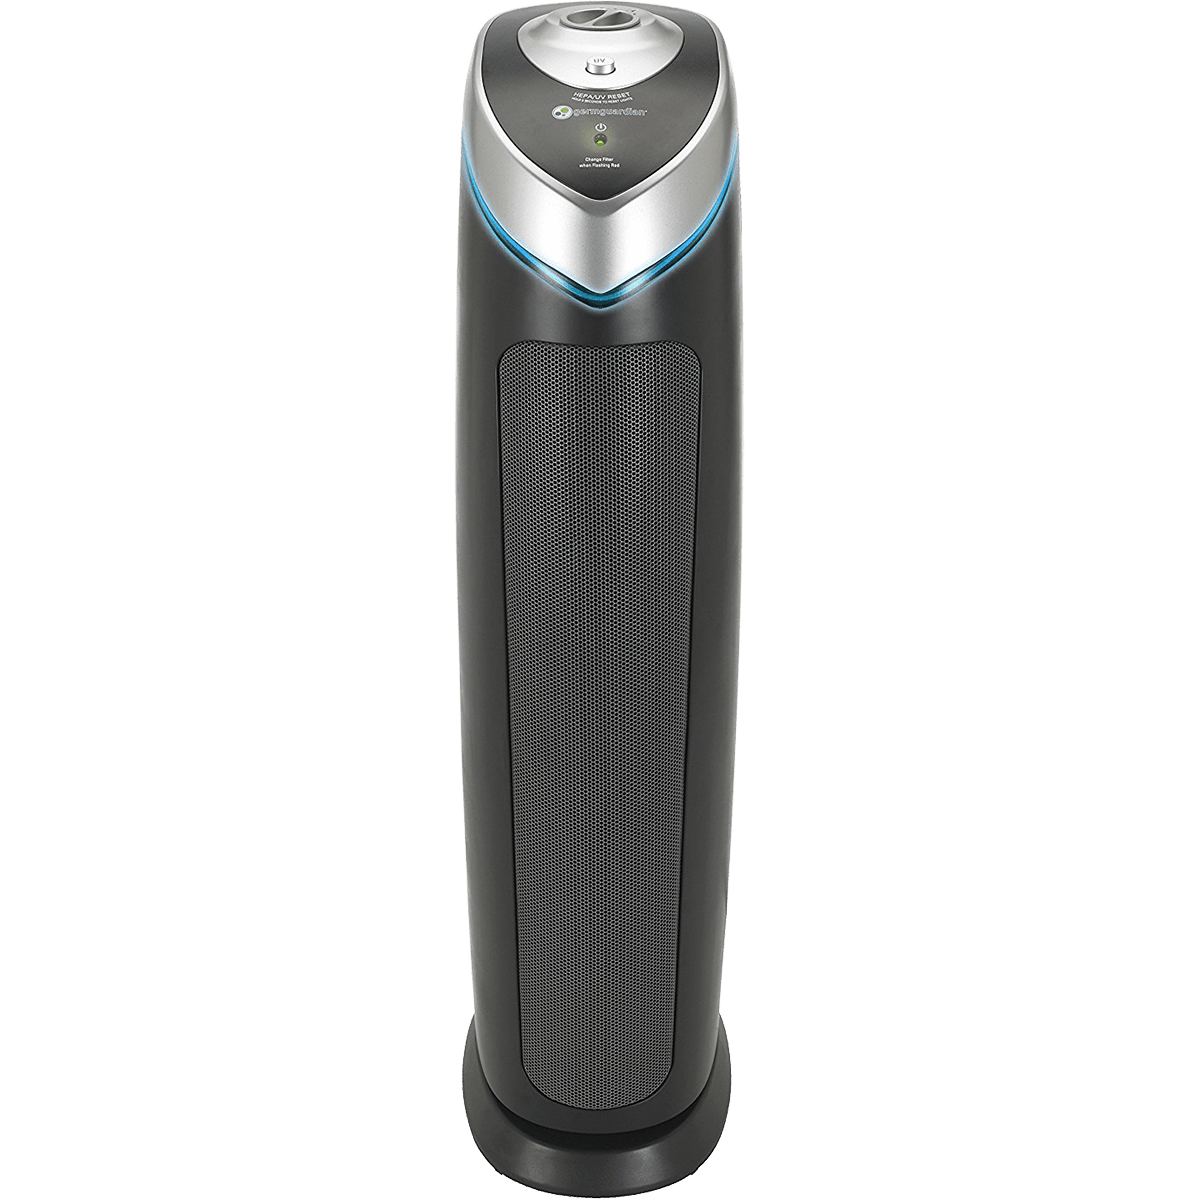 GermGuardian AC5000 UV-C and True HEPA Air Purifier ge1623